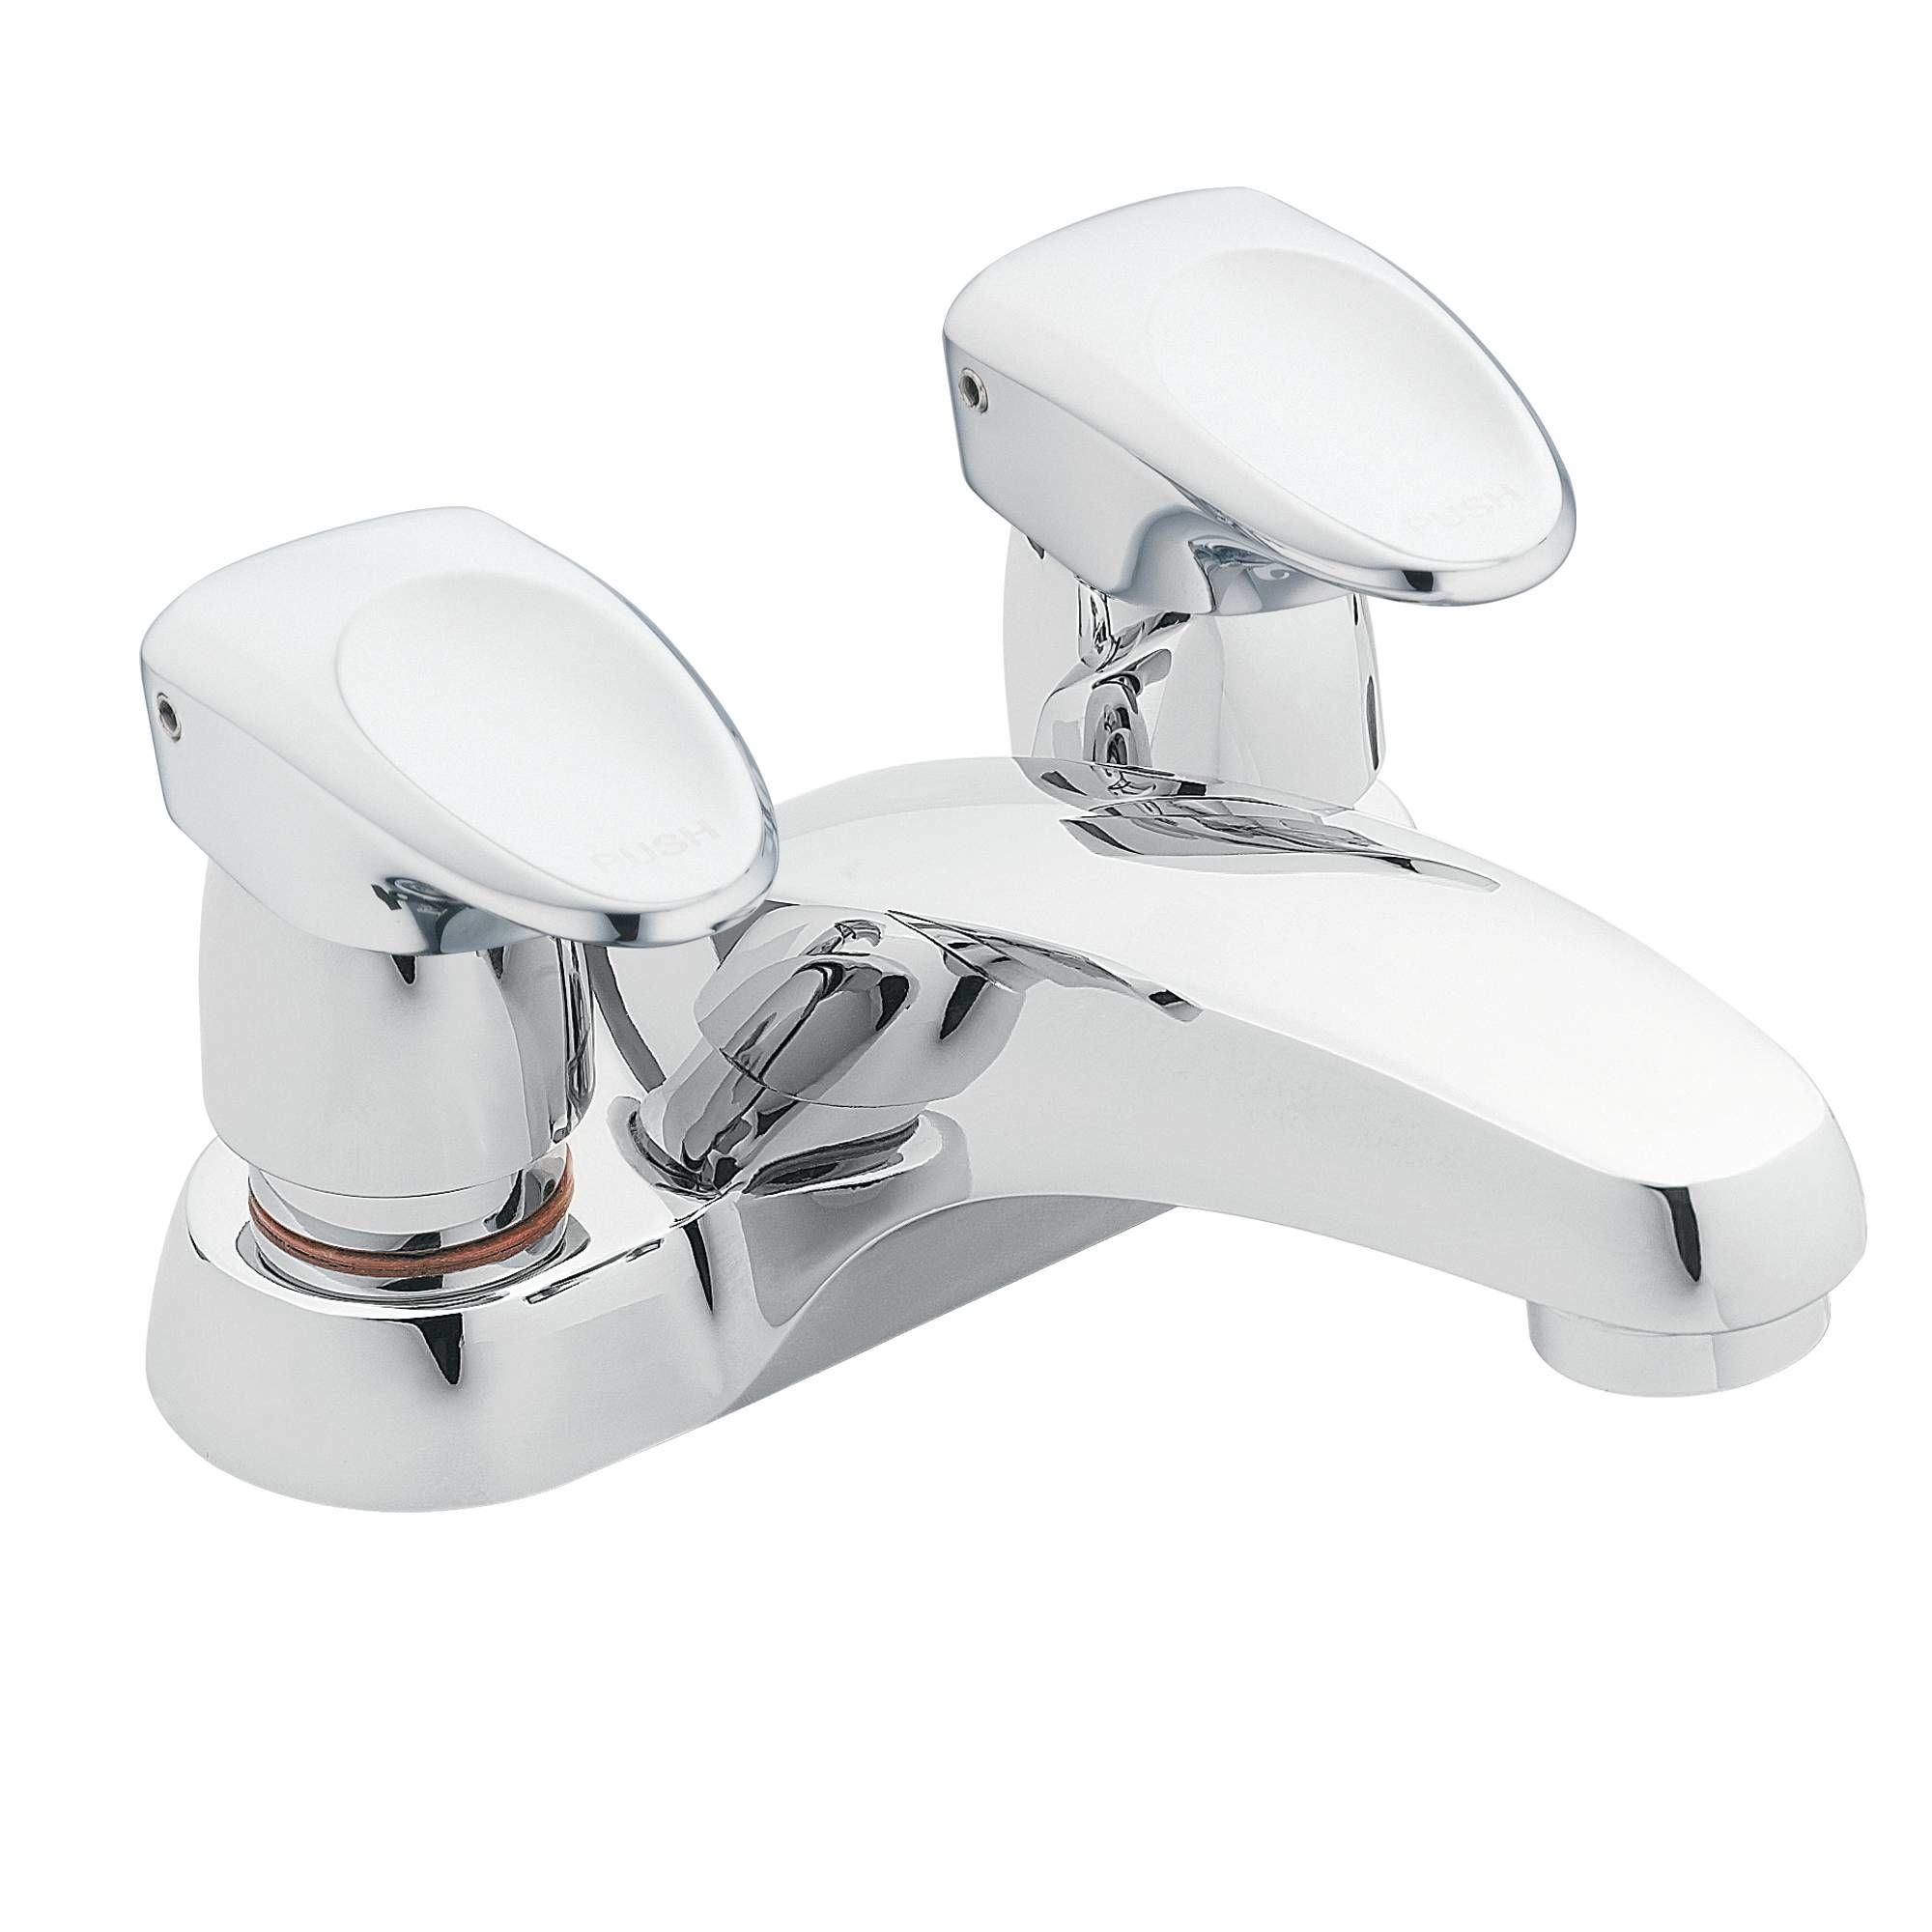 Moen 8886 Chrome Single Handle Centerset Metering Bathroom Faucet ...